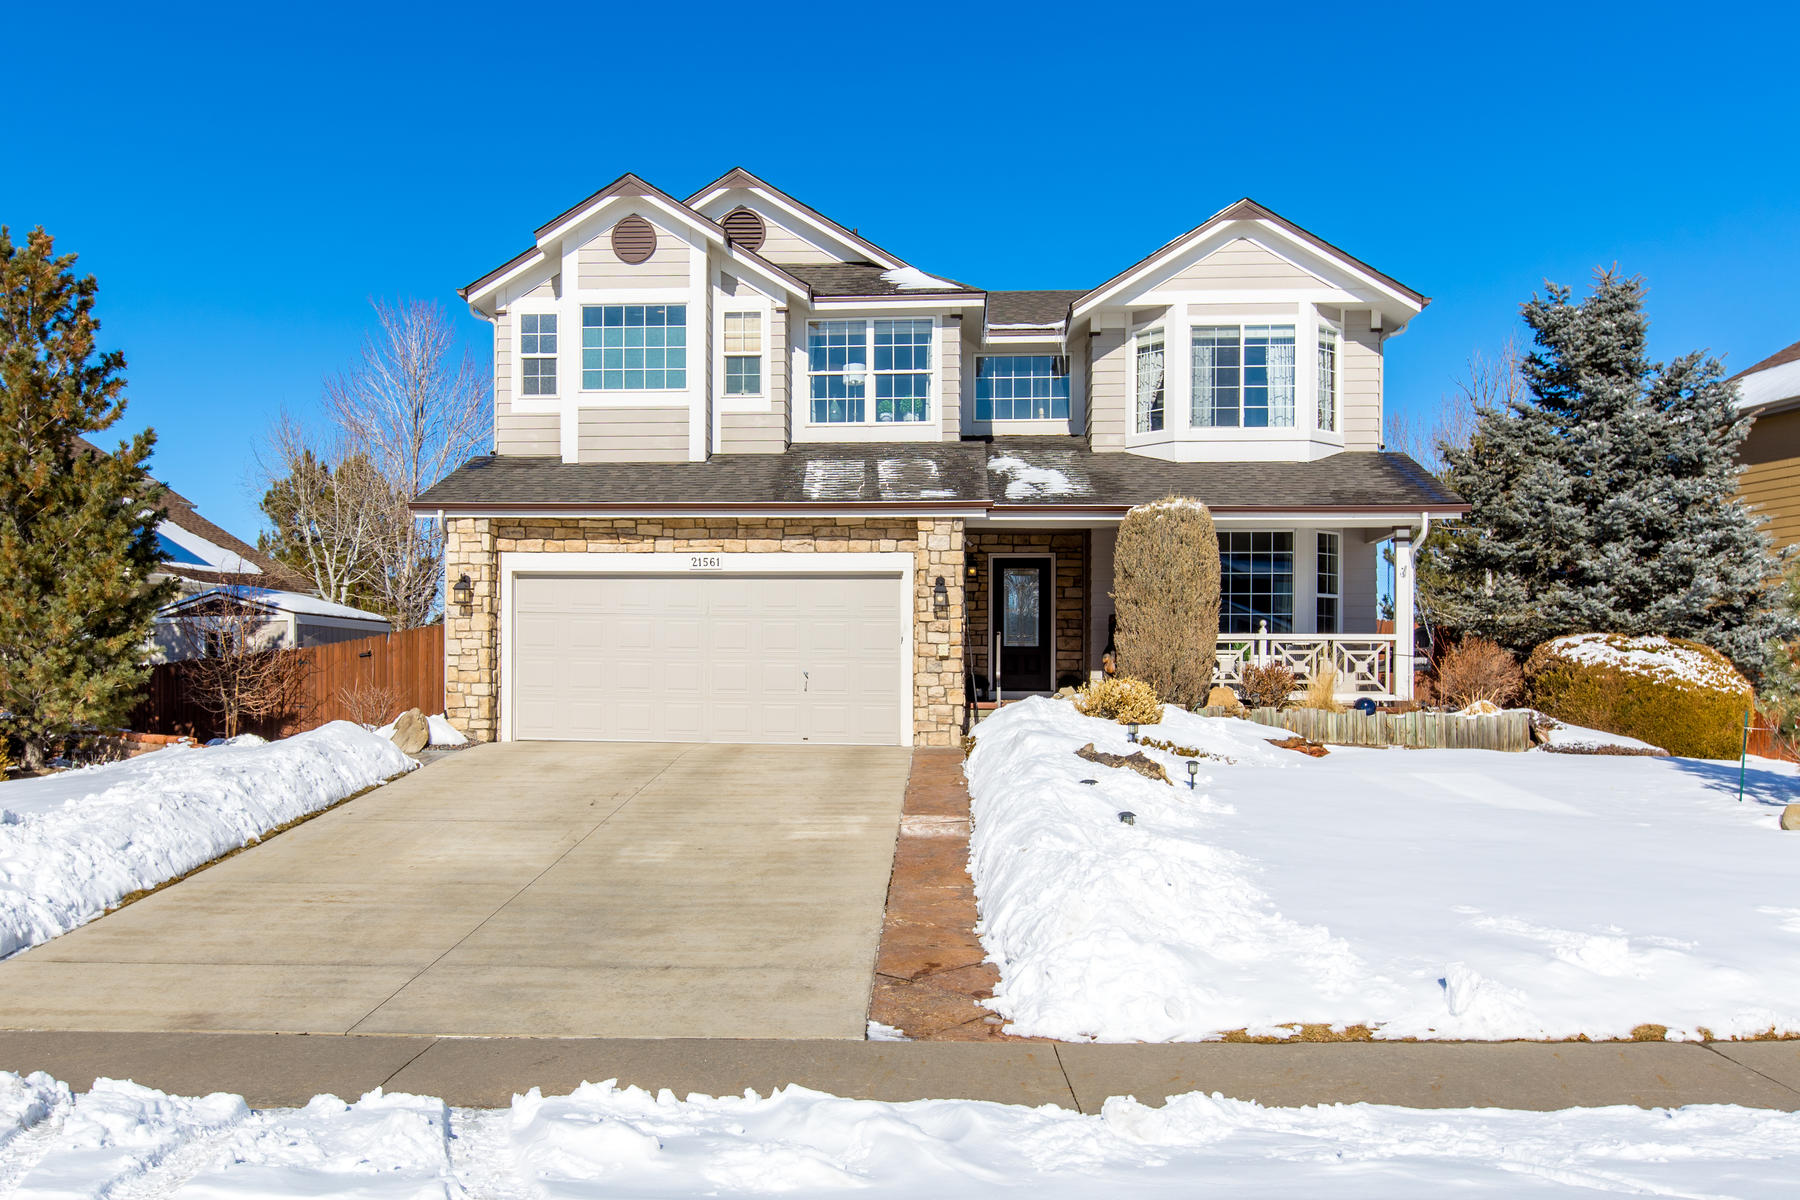 """Single Family Homes のために 売買 アット A """"one of a kind"""" home! Immaculately maintained and beautiful renovated. 21561 Unbridled Avenue Parker, コロラド 80138 アメリカ"""